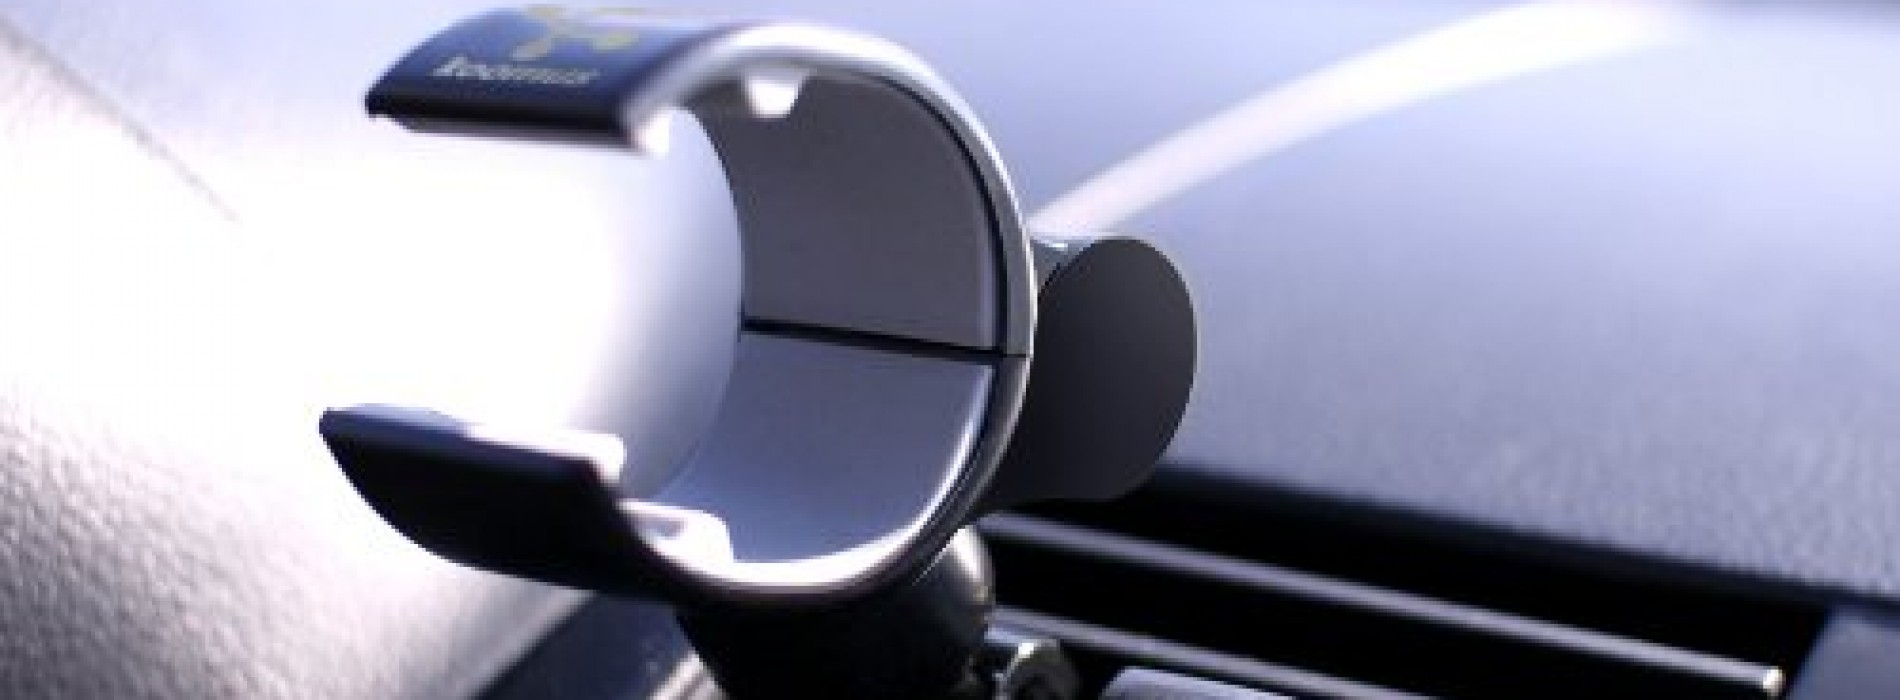 Accessory of the Day: Koomus Air Vent Smartphone Car Mount $15.99